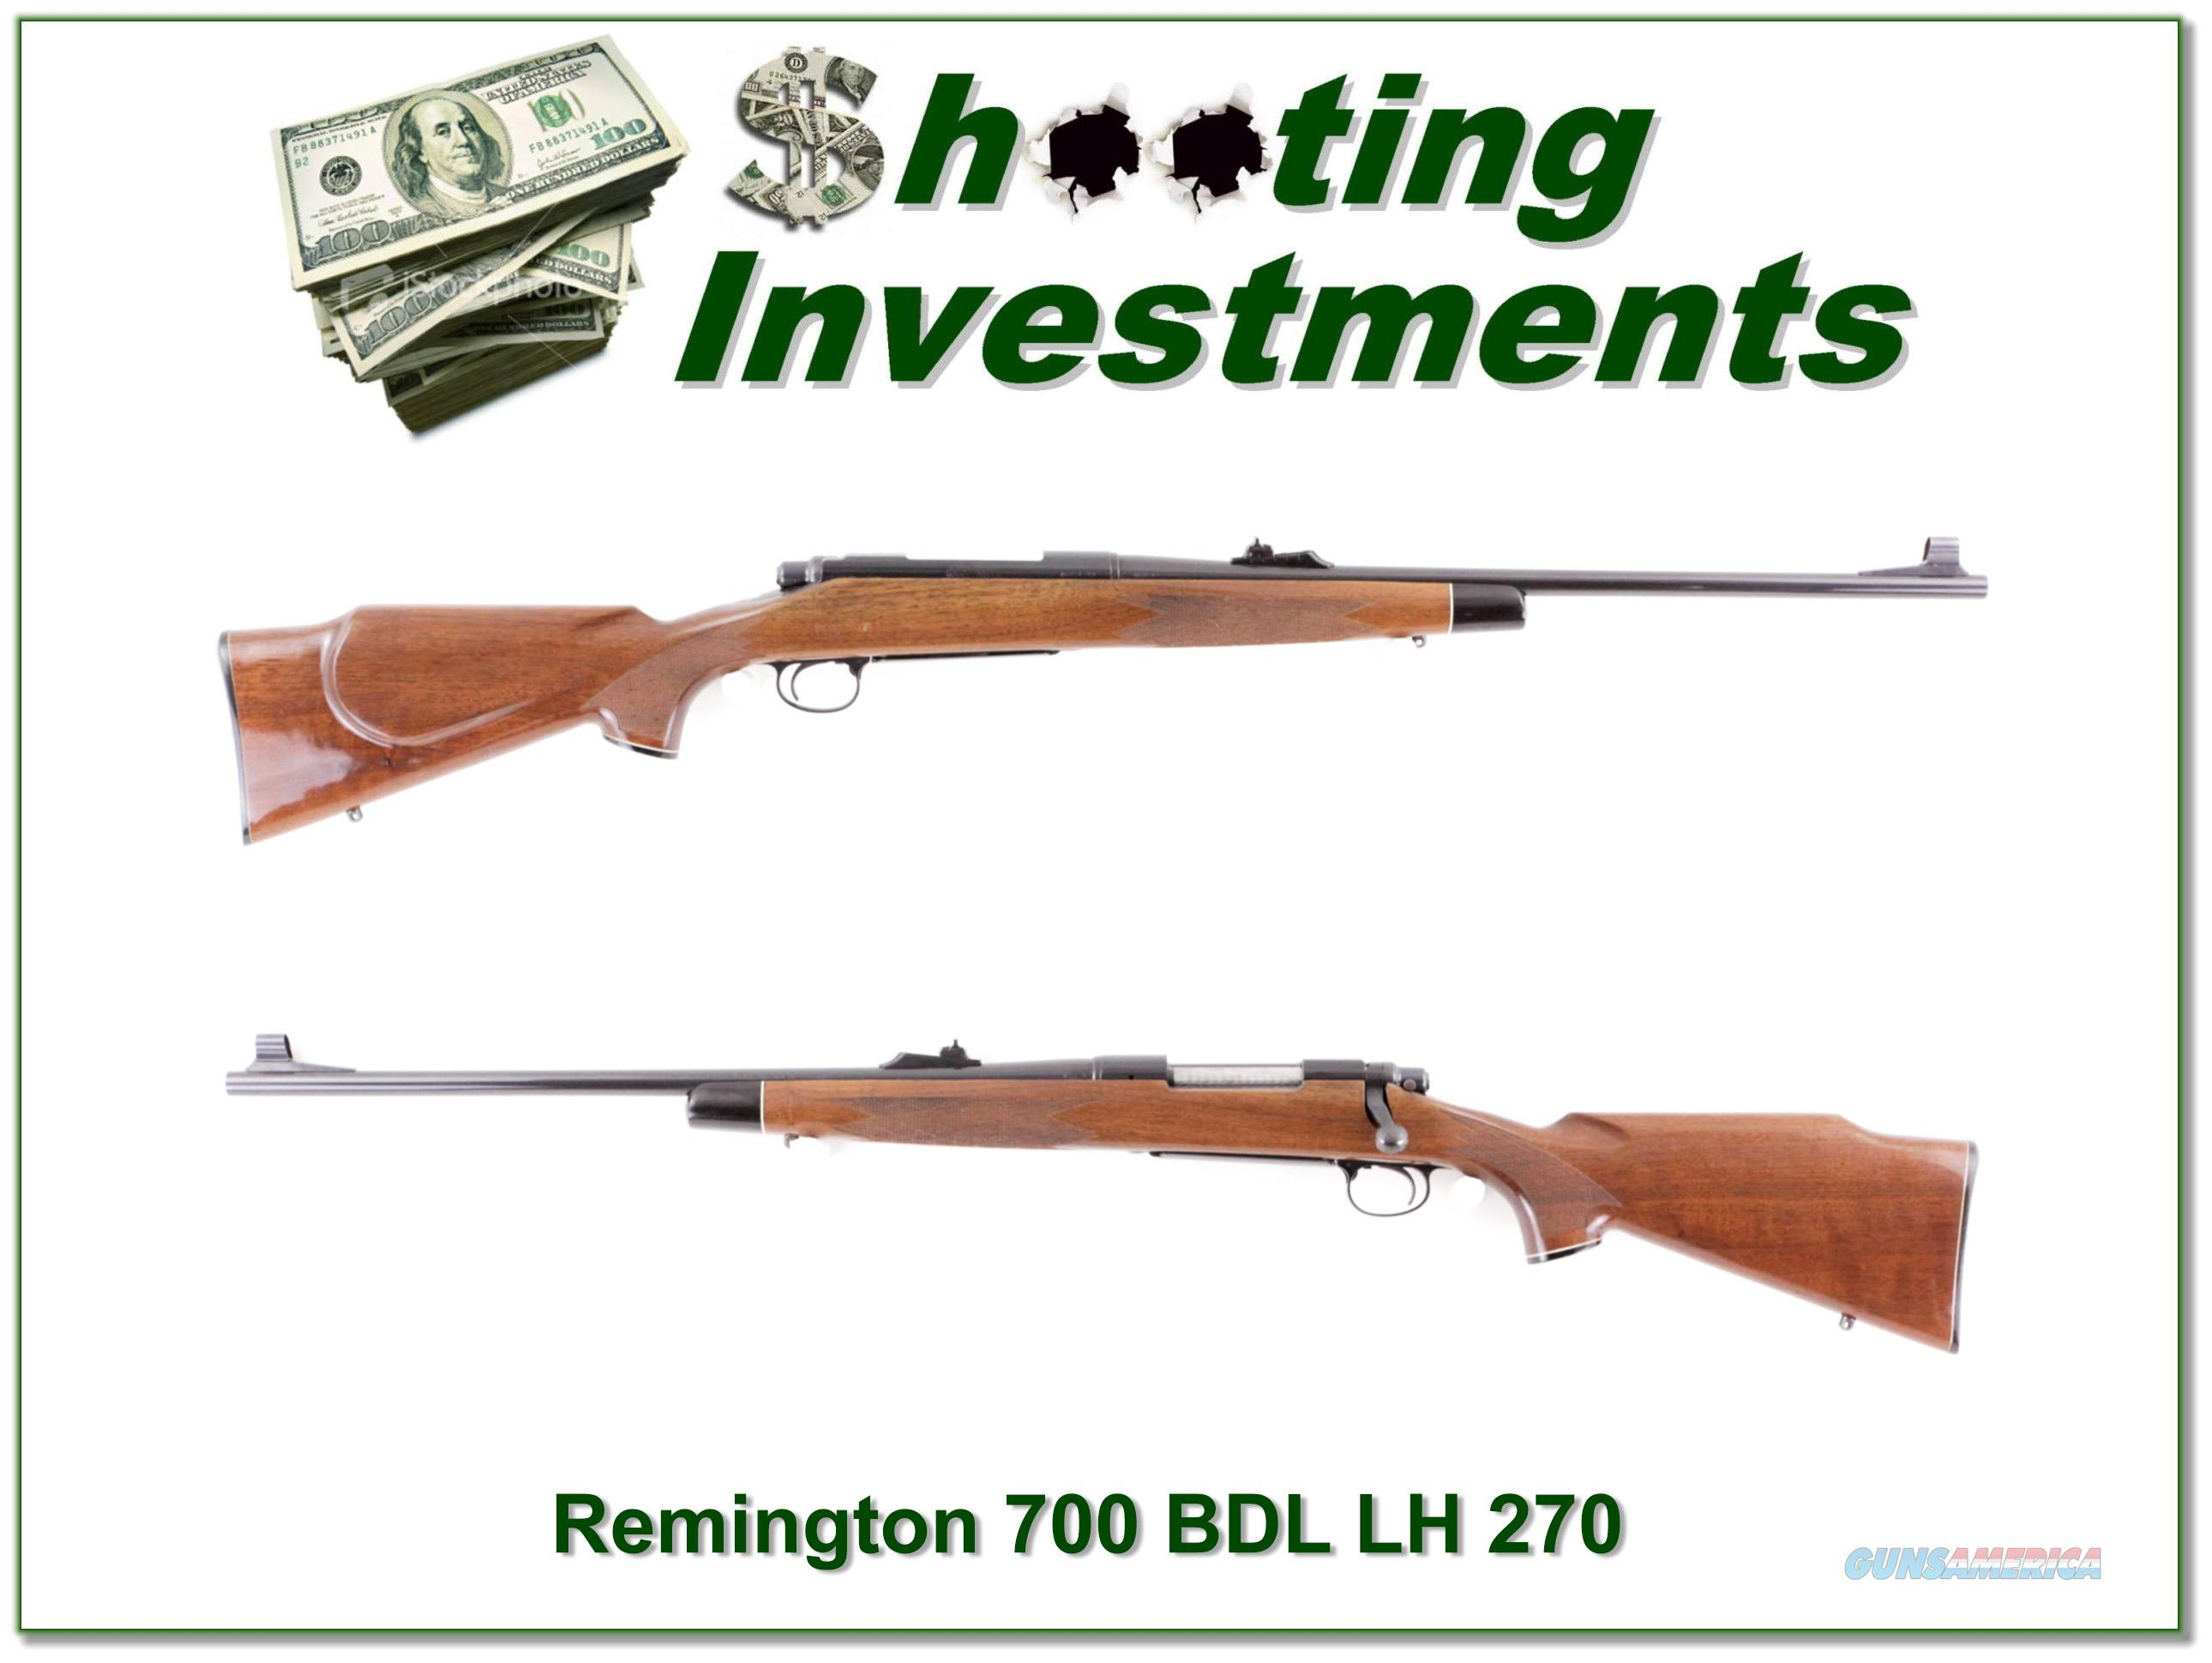 Remington 700 LH BDL 270 Exc Cond!  Guns > Rifles > Remington Rifles - Modern > Model 700 > Sporting